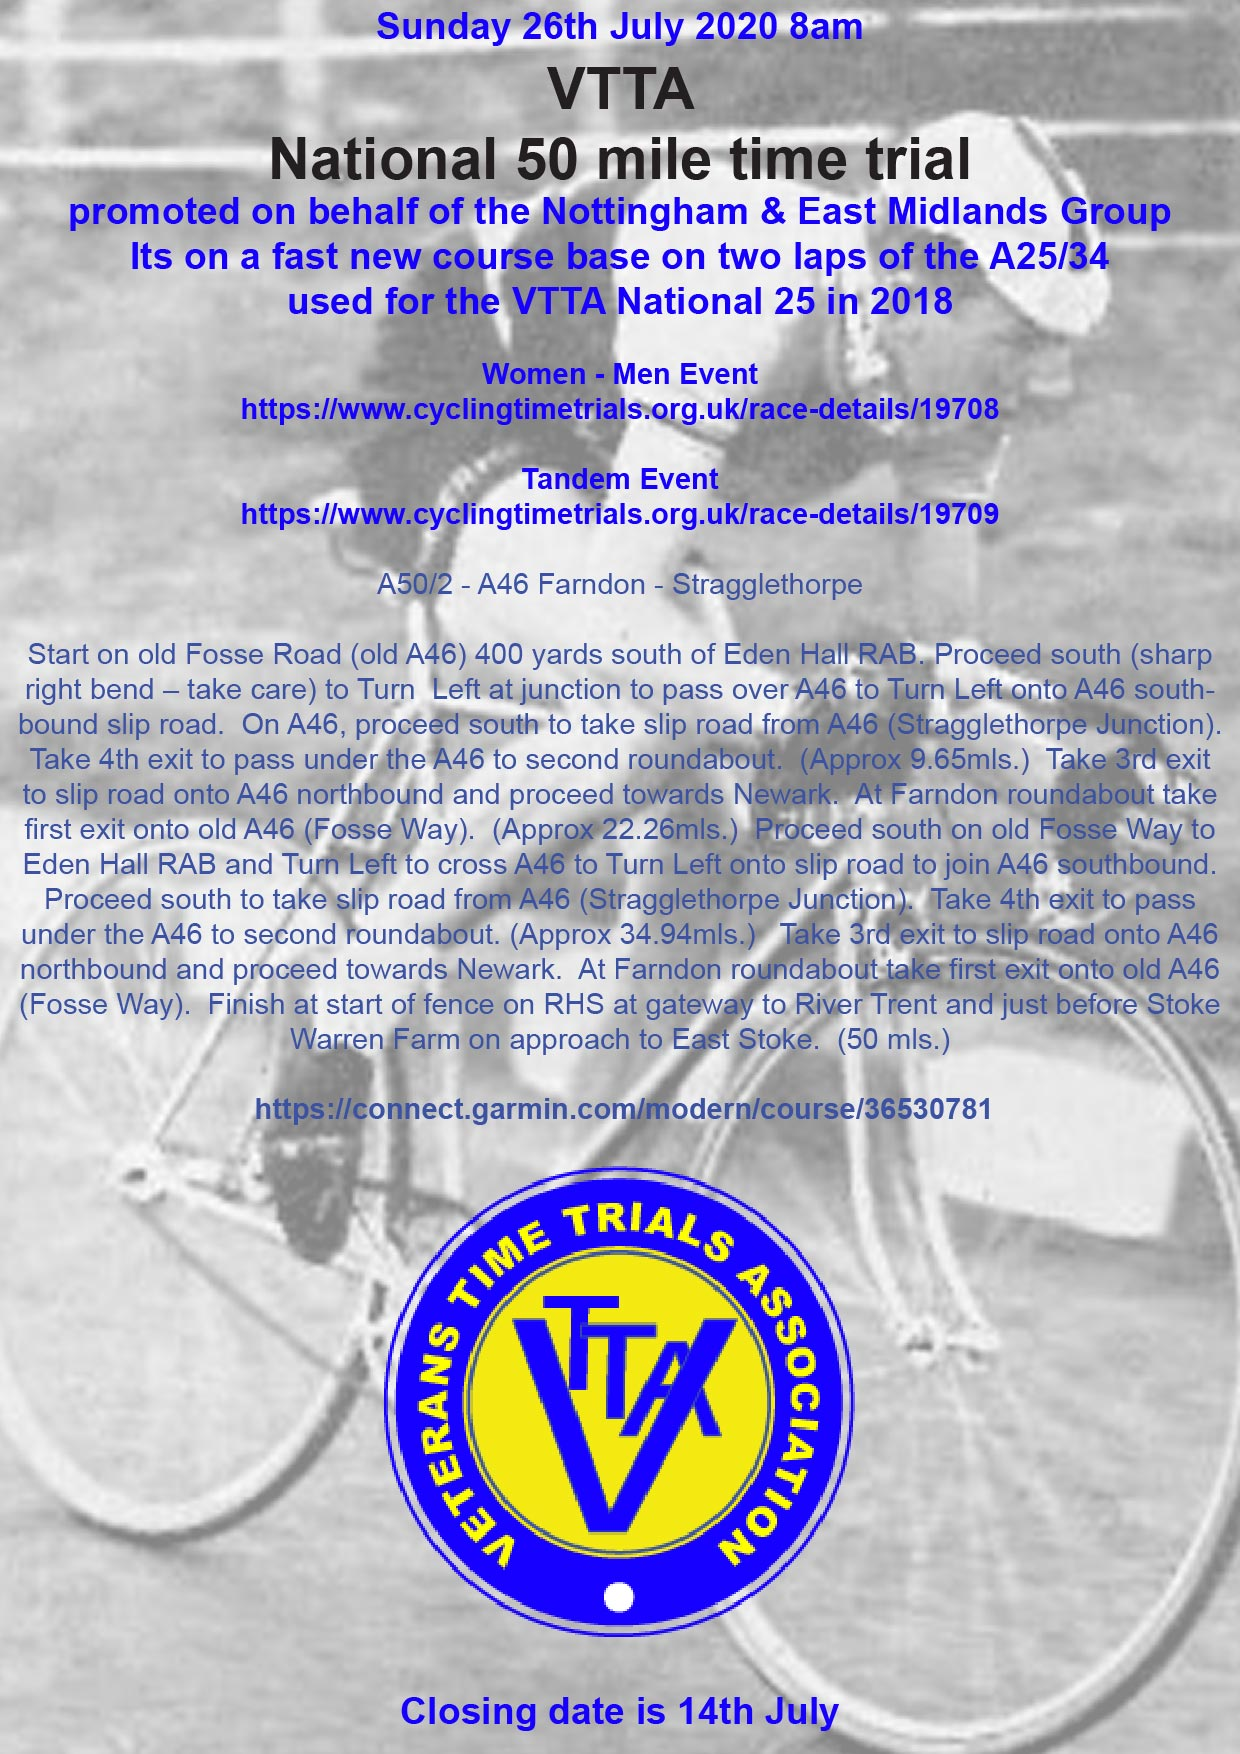 VTTA National 50 mile time trial - Newark